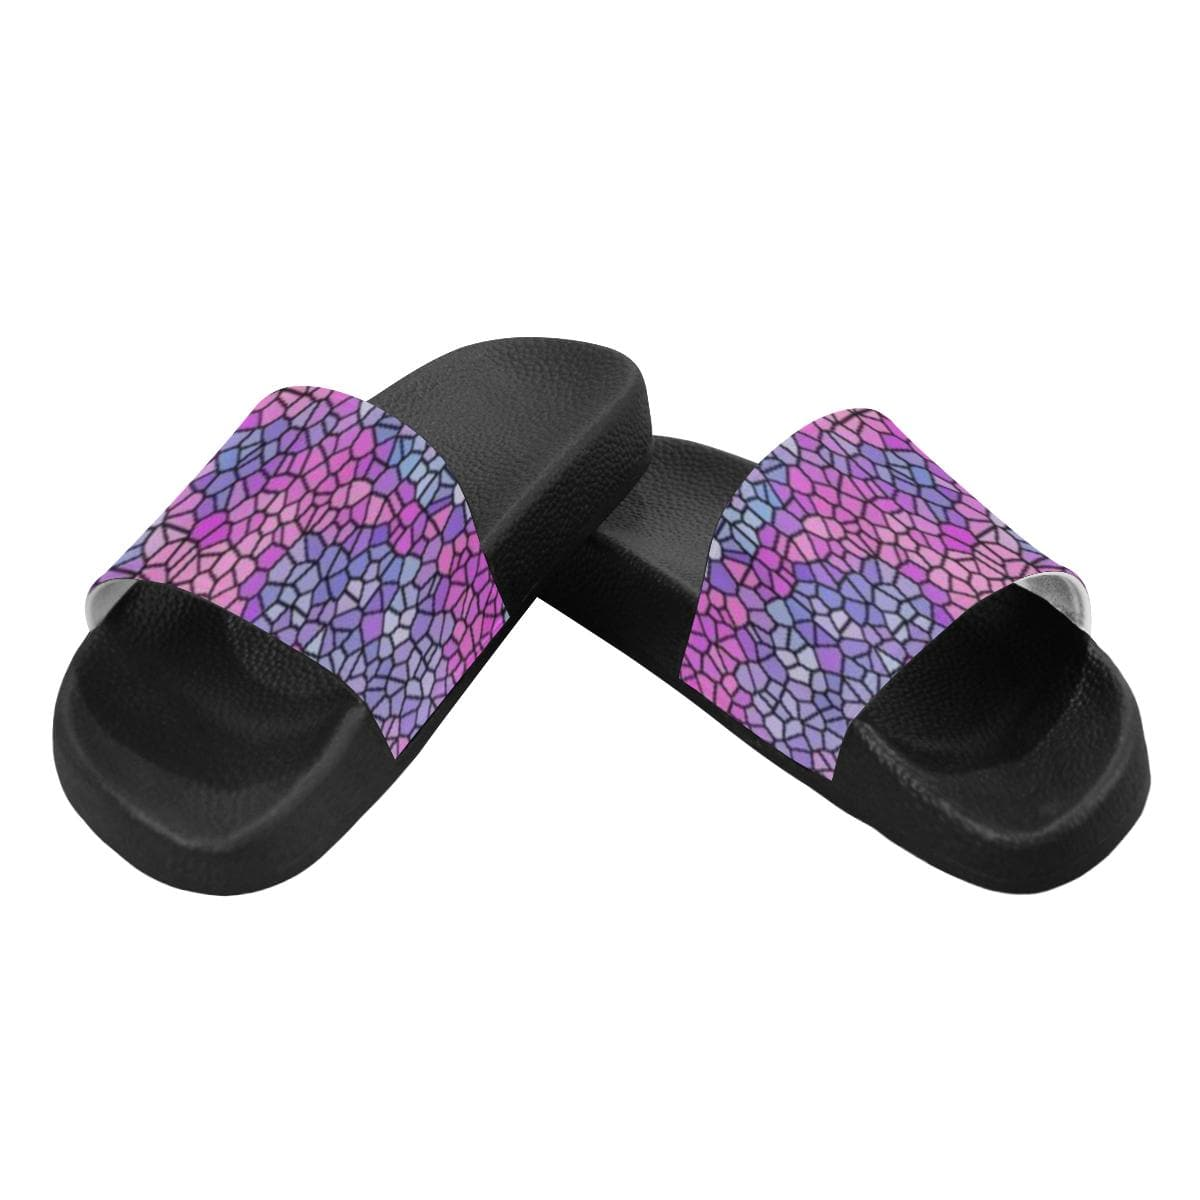 Royal Pallette Women's Slide Sandals - Tie-Fly